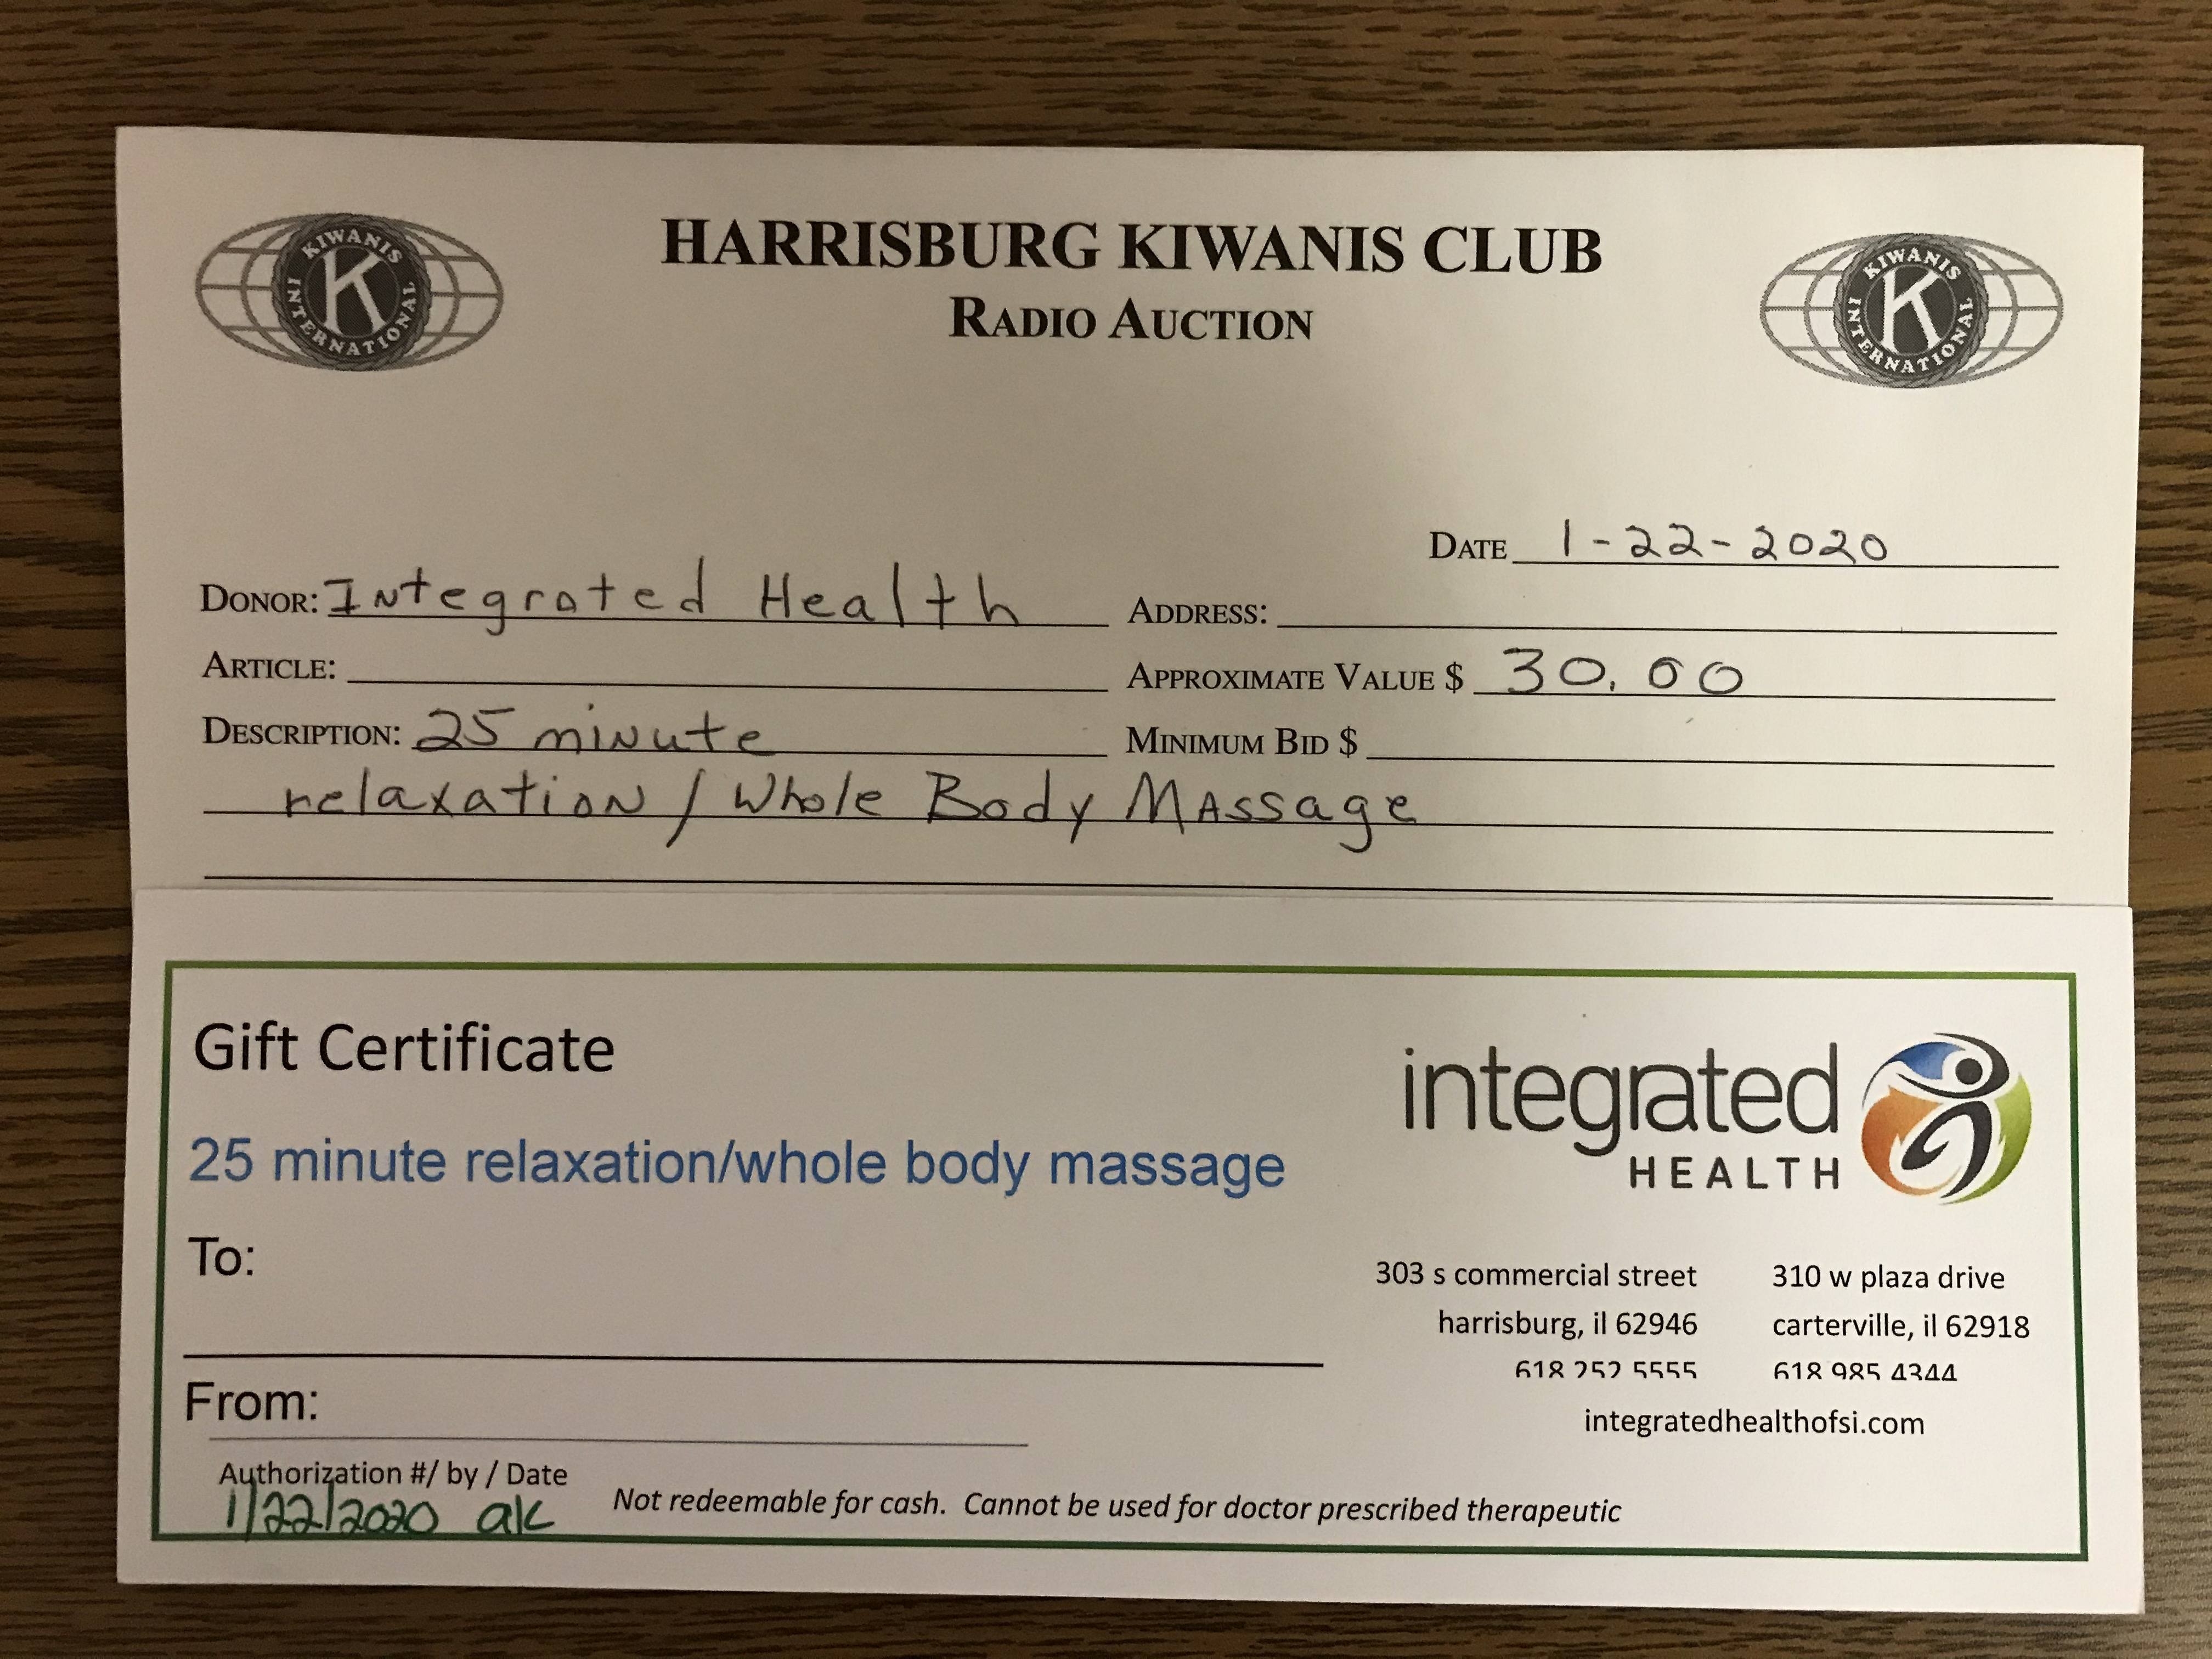 Item 133 - Integrated Health 25 Minute Relaxation / Whole Body Massage